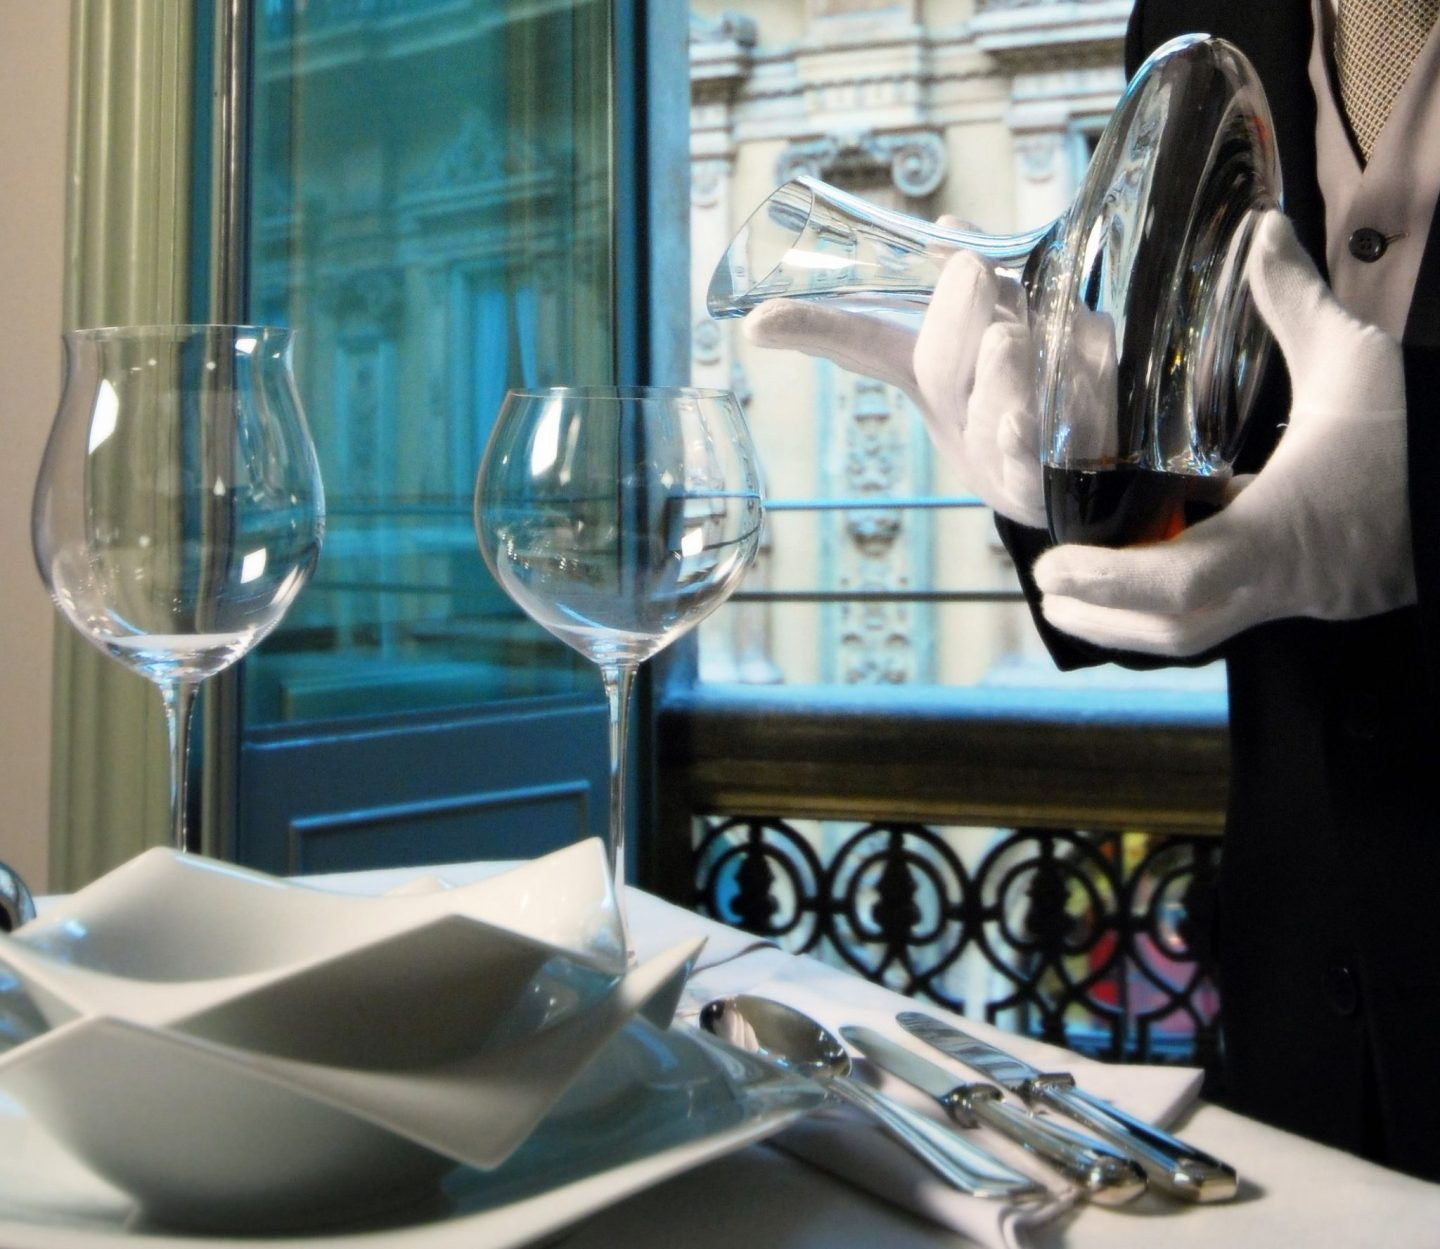 Hotel butler service: how it works and benefit from it